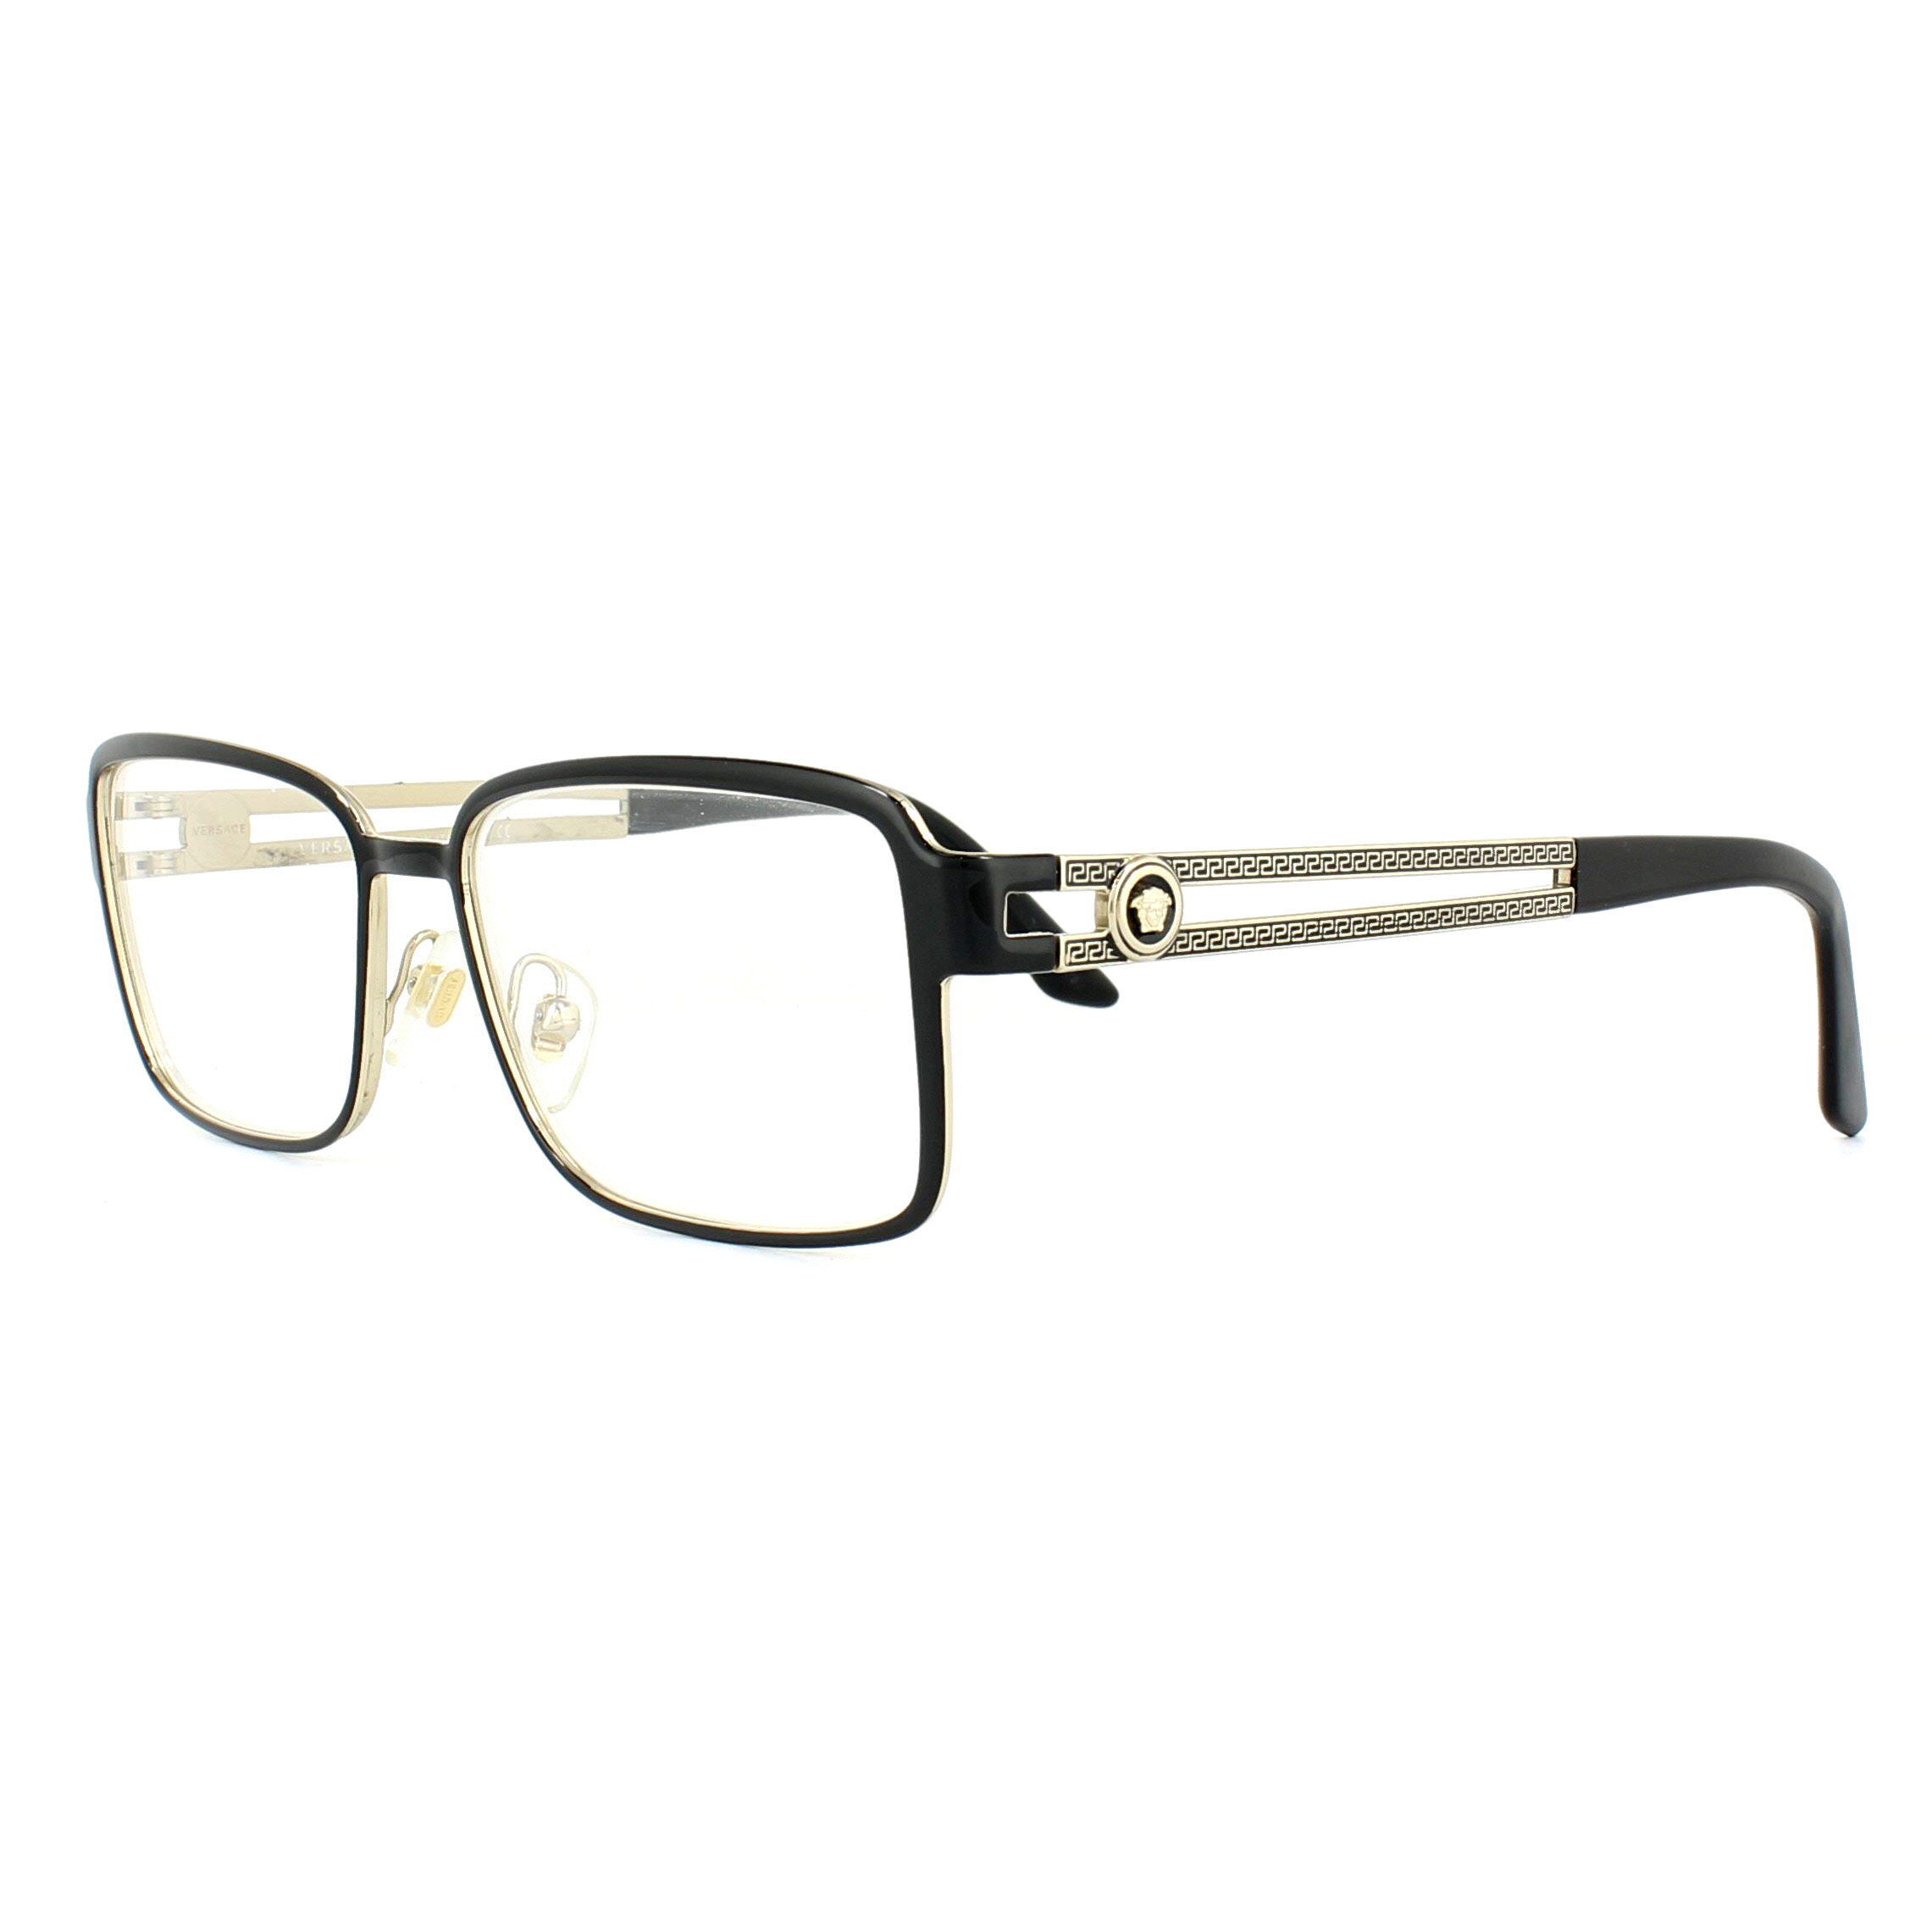 a8b680a739 Sentinel Versace Glasses Frames 1236 1371 Black and Pale Gold 55mm Mens